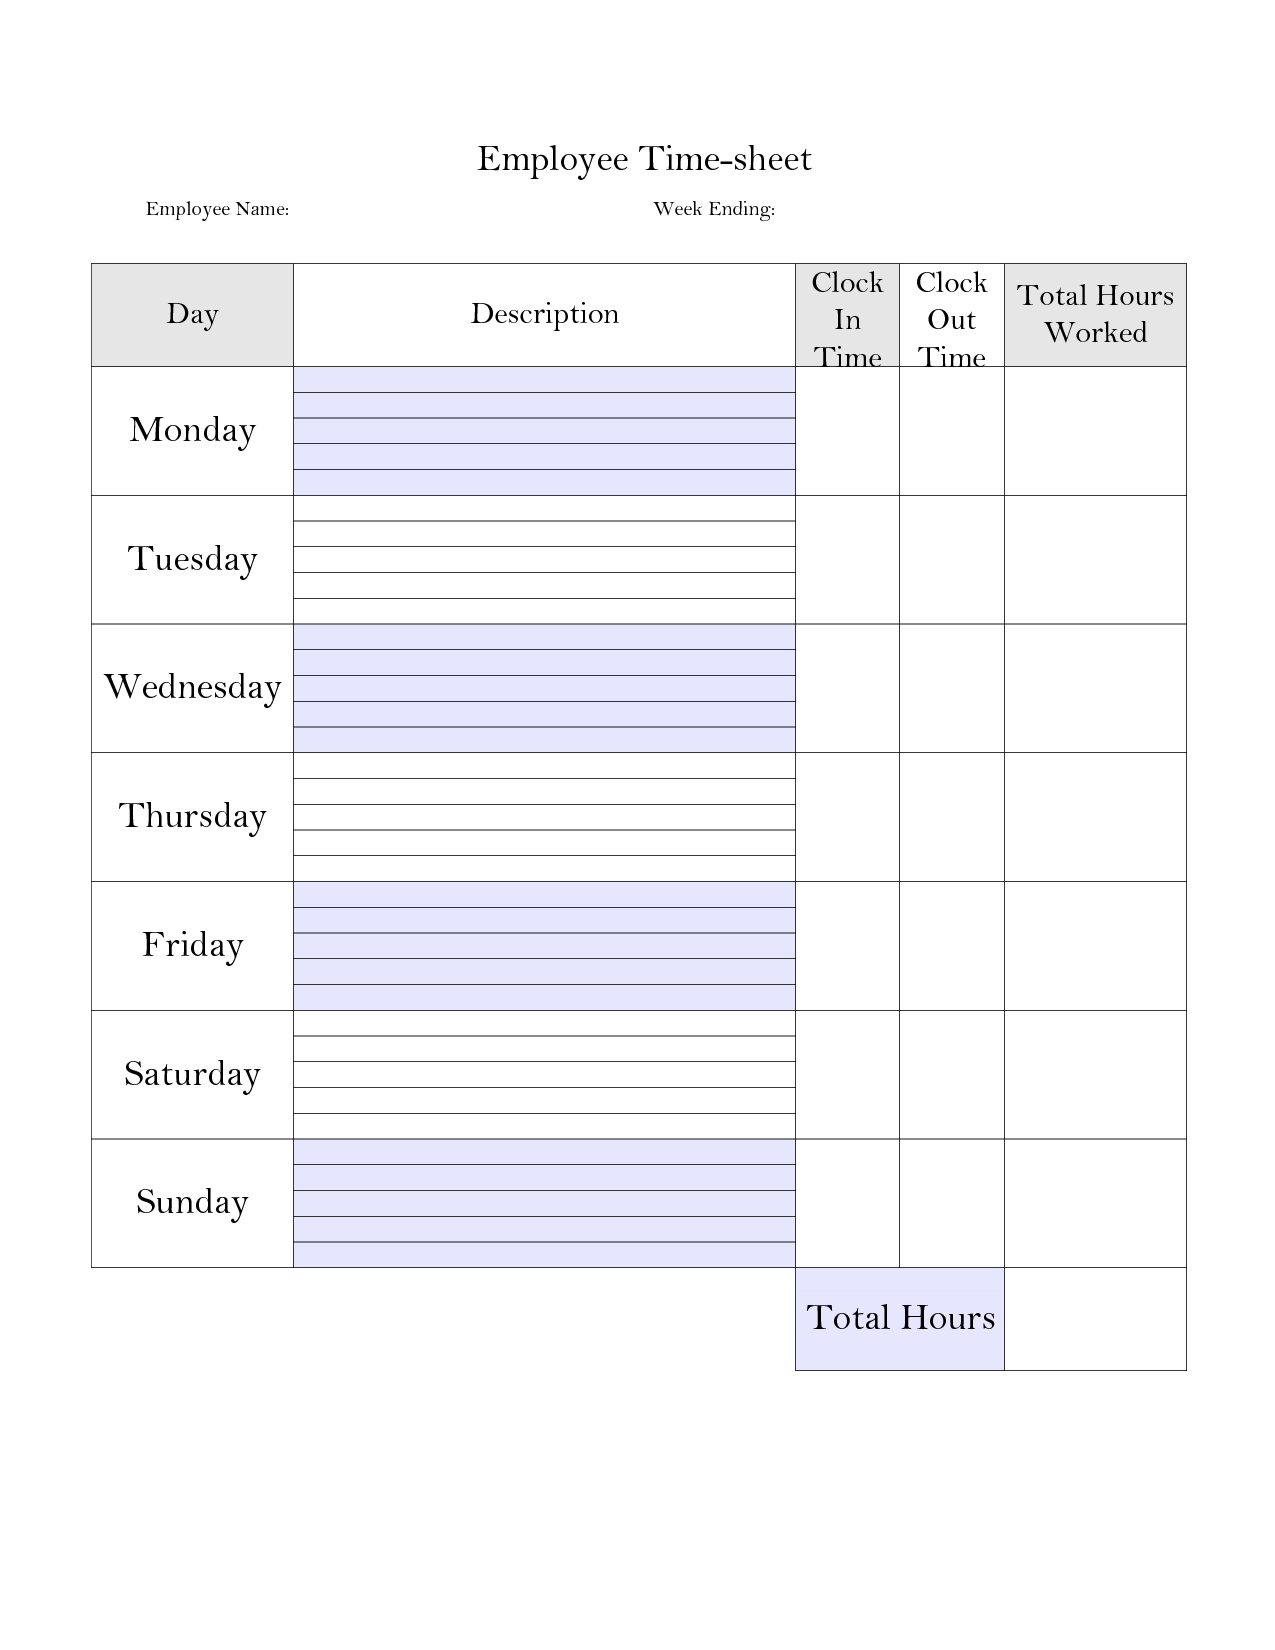 Times Sheet Template and Printable Weekly Time Sheet Printable Timecard Time Sheets